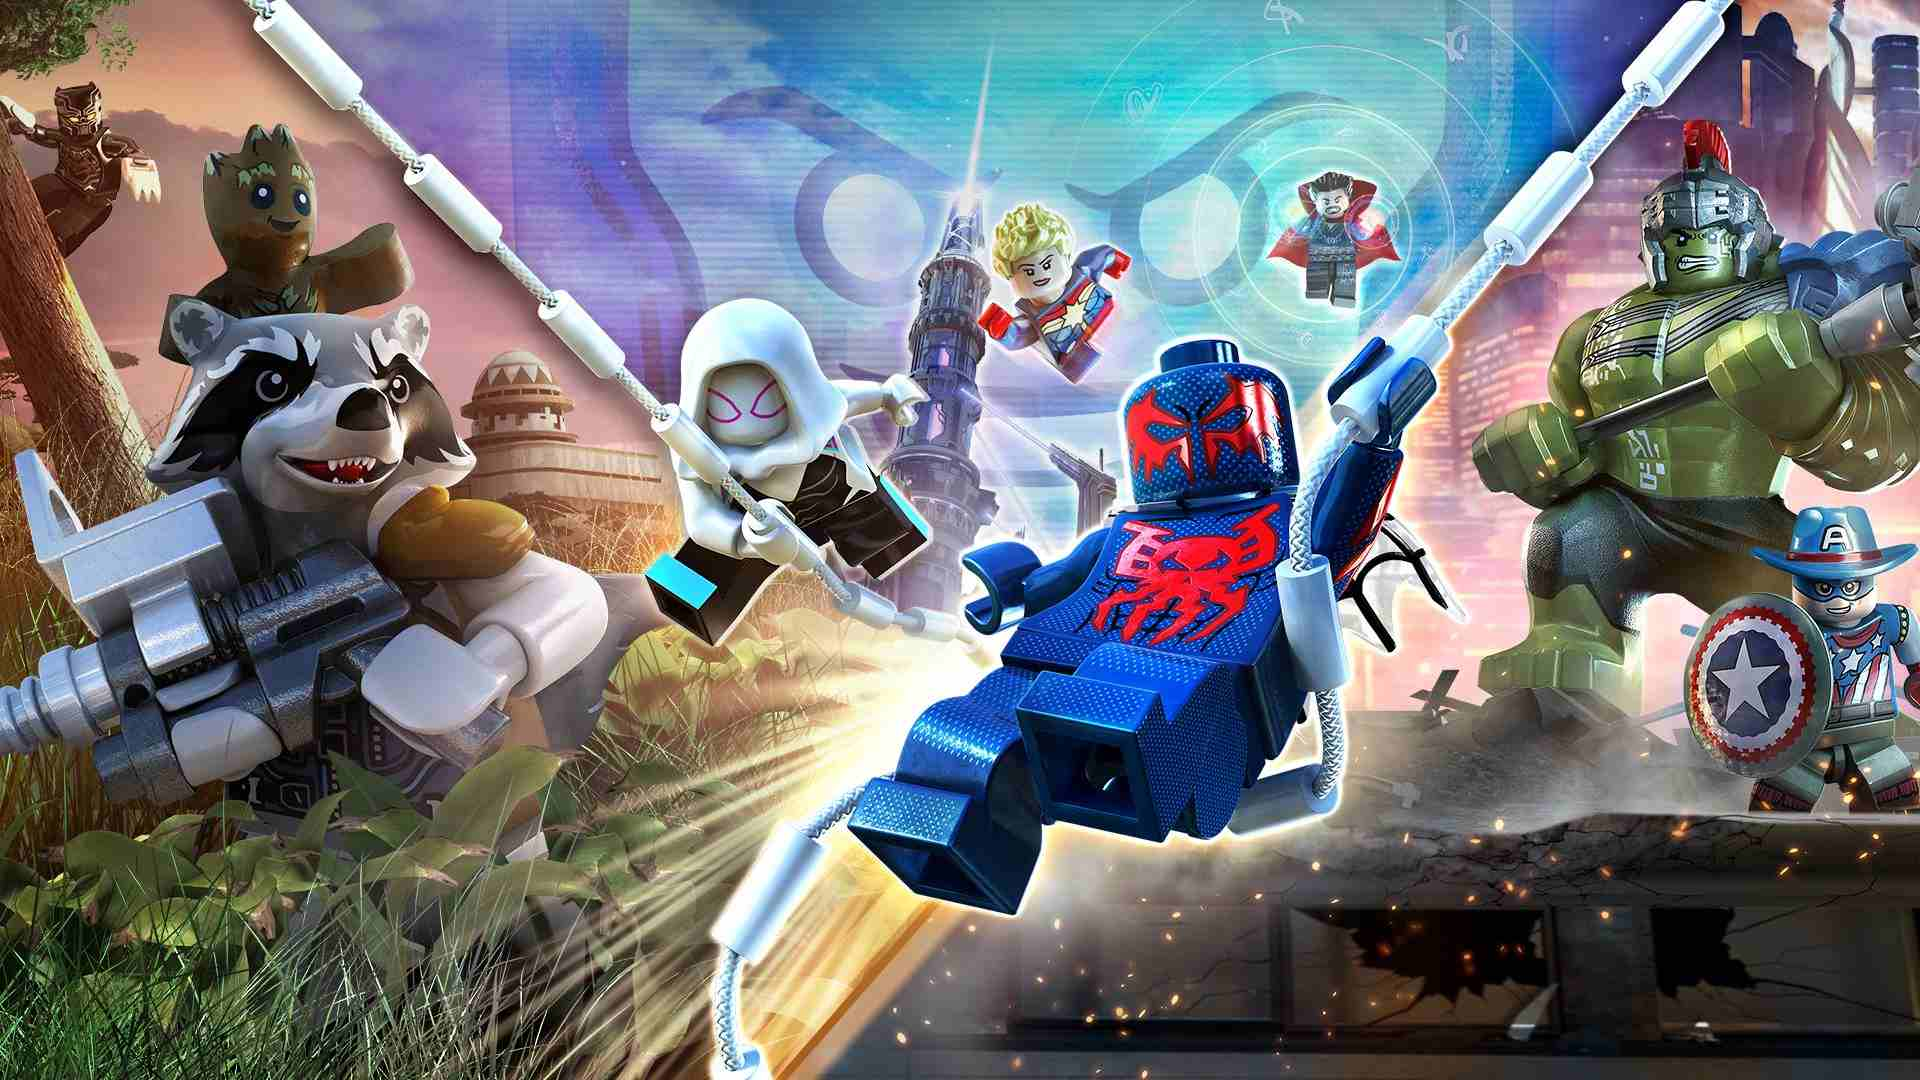 LEGO Marvel Superheroes 2 video game on Xbox One, Nintendo Switch, PS4, PC, and macOS.